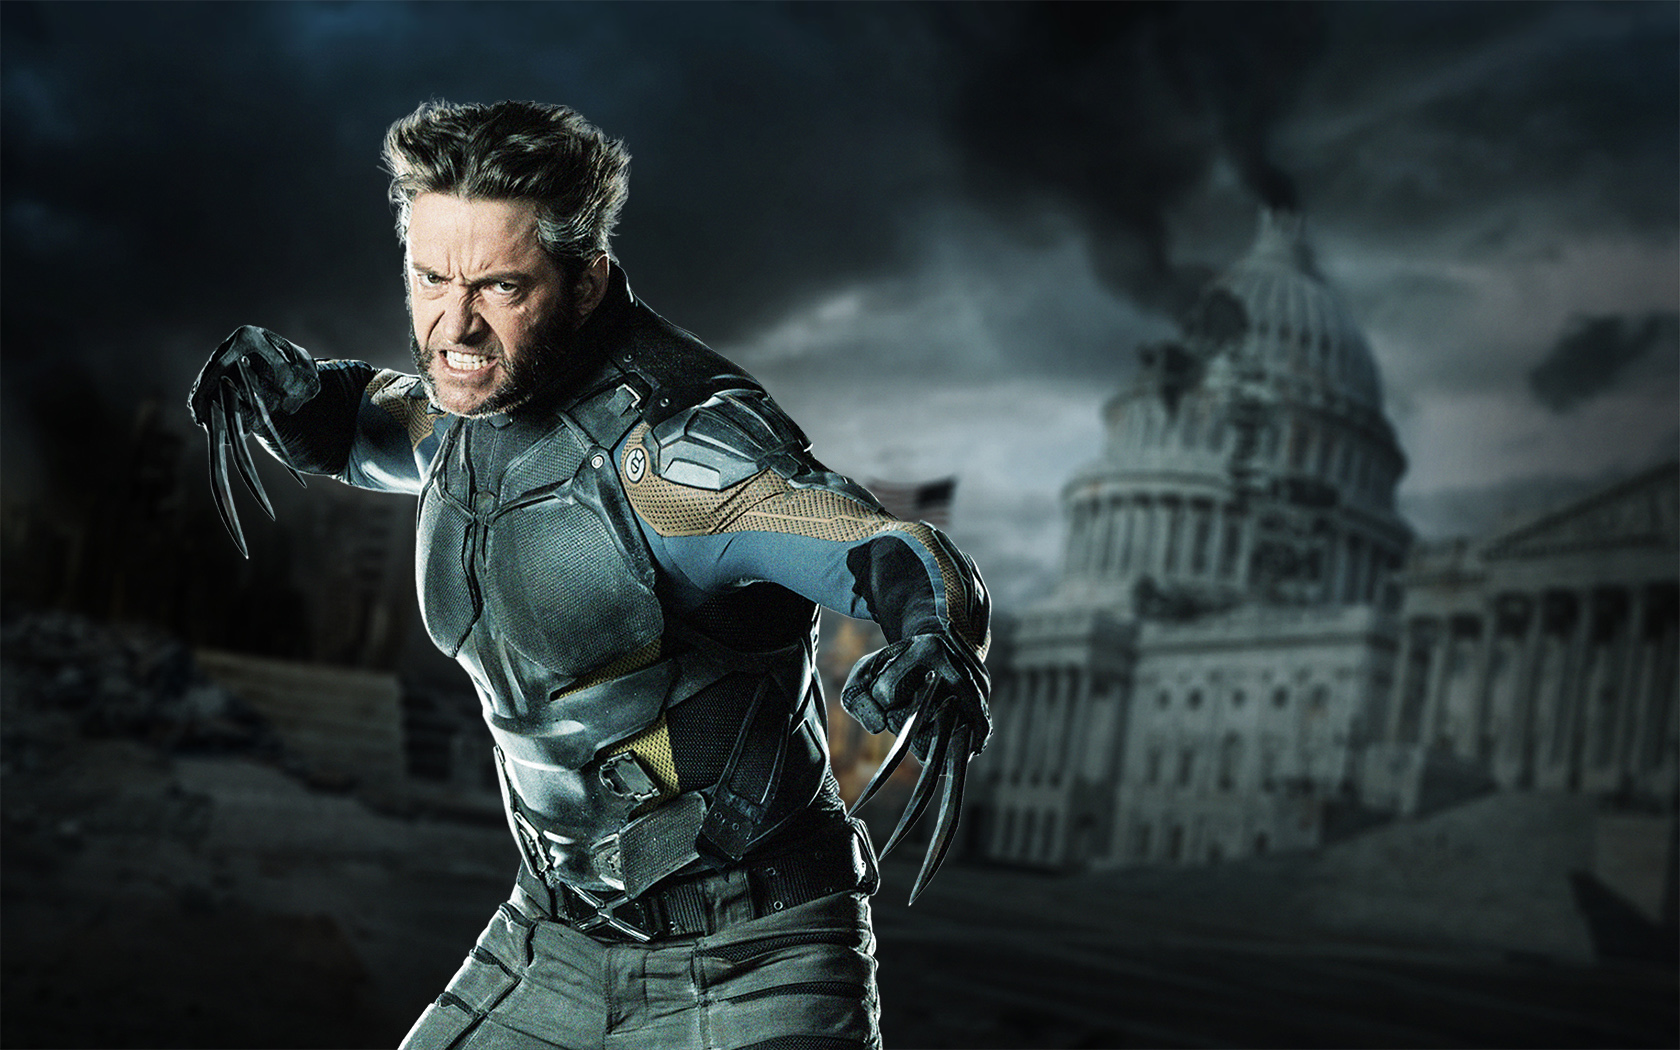 X Men Days Of Future Past character wallpapers 3 1680x1050